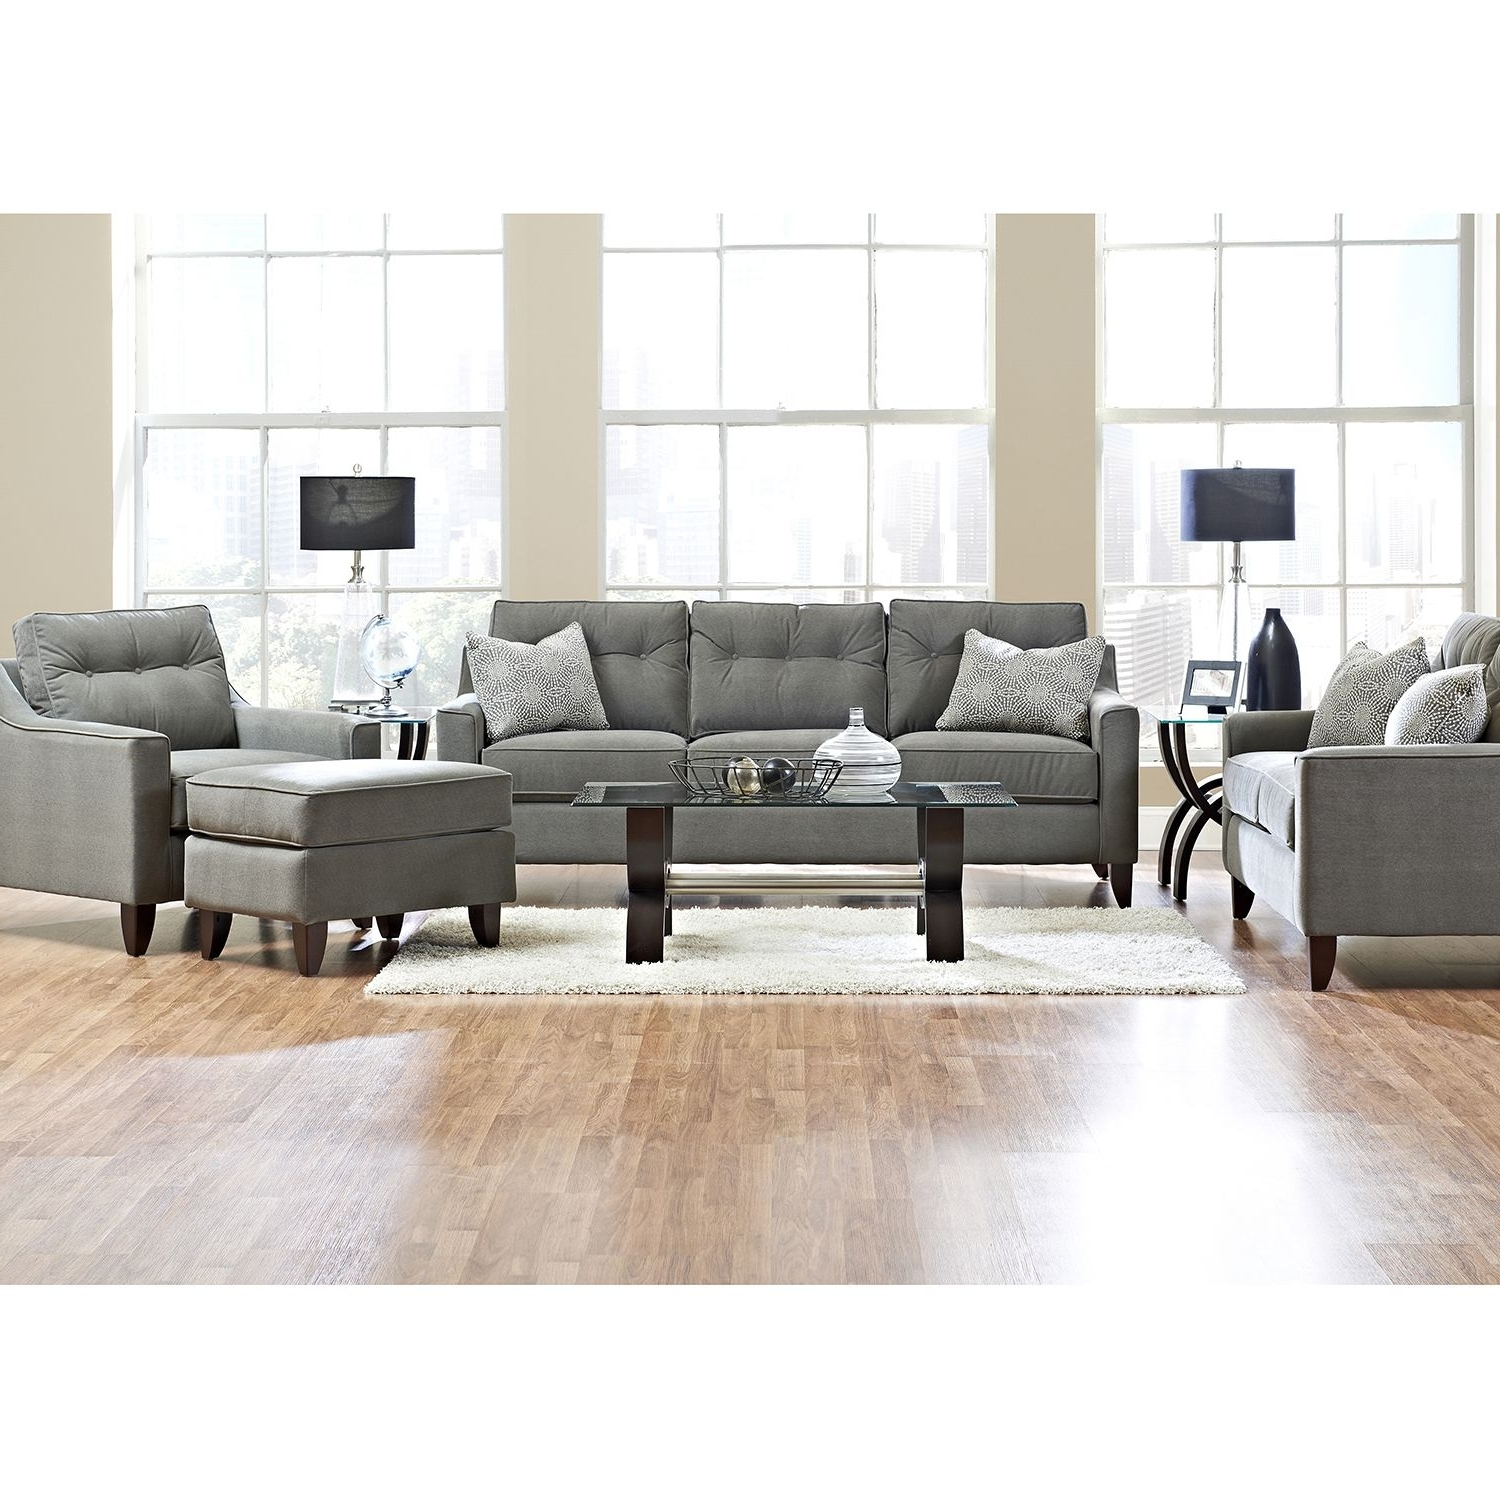 Well Known Prestige Aaron Sofa, Loveseat, Chair And Ottoman Collection Regarding Sectional Sofas At Aarons (View 19 of 20)